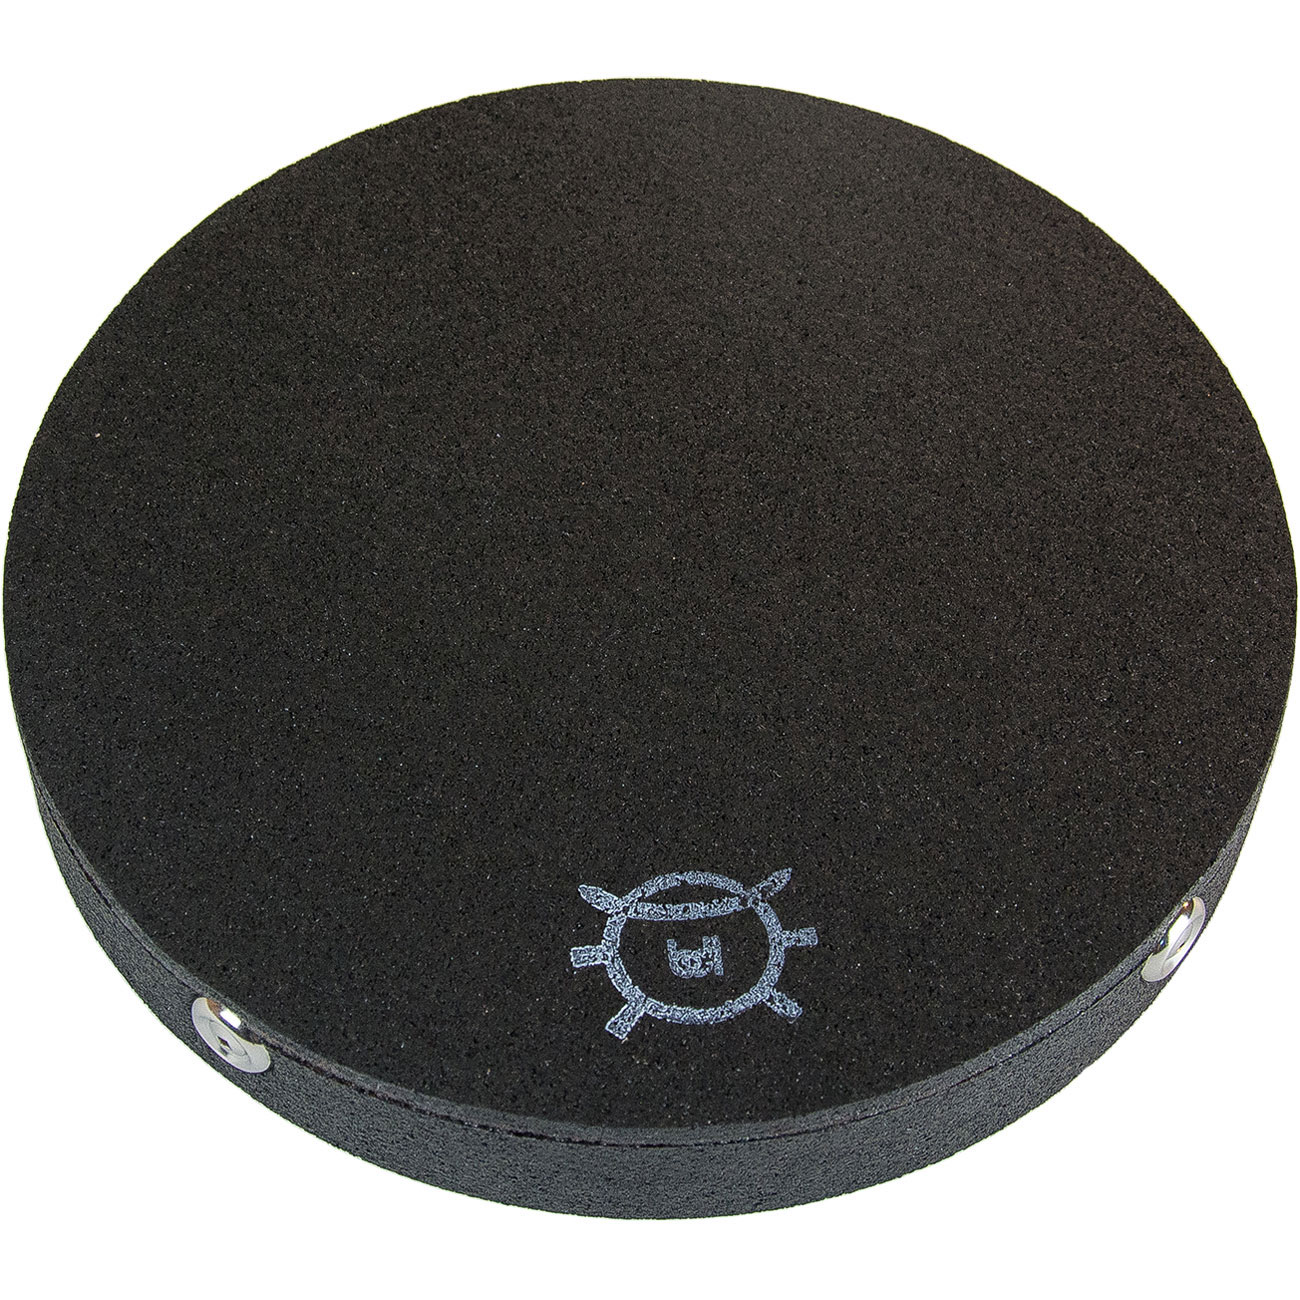 beetle percussion 10 travel marching practice pad m10. Black Bedroom Furniture Sets. Home Design Ideas